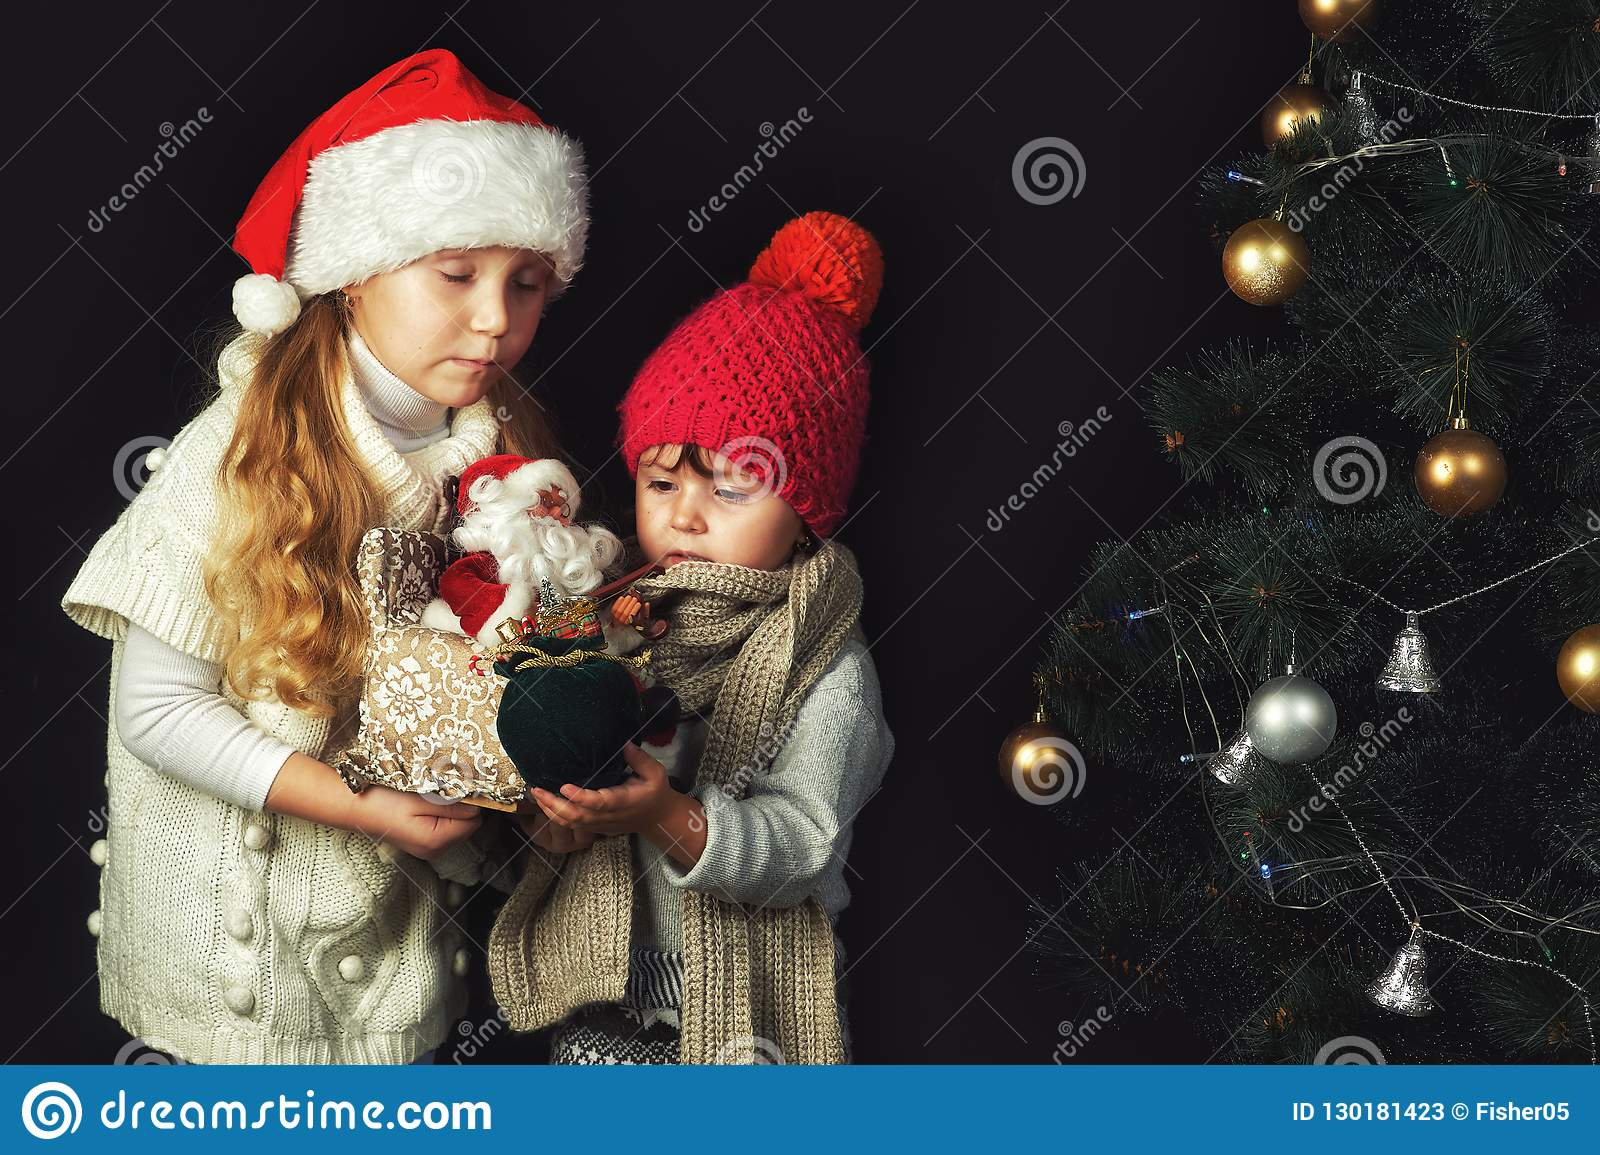 Two Children At The Christmas Tree Girls In Warm Sweaters And Hats Stock Image Image Of Baby Place 130181423